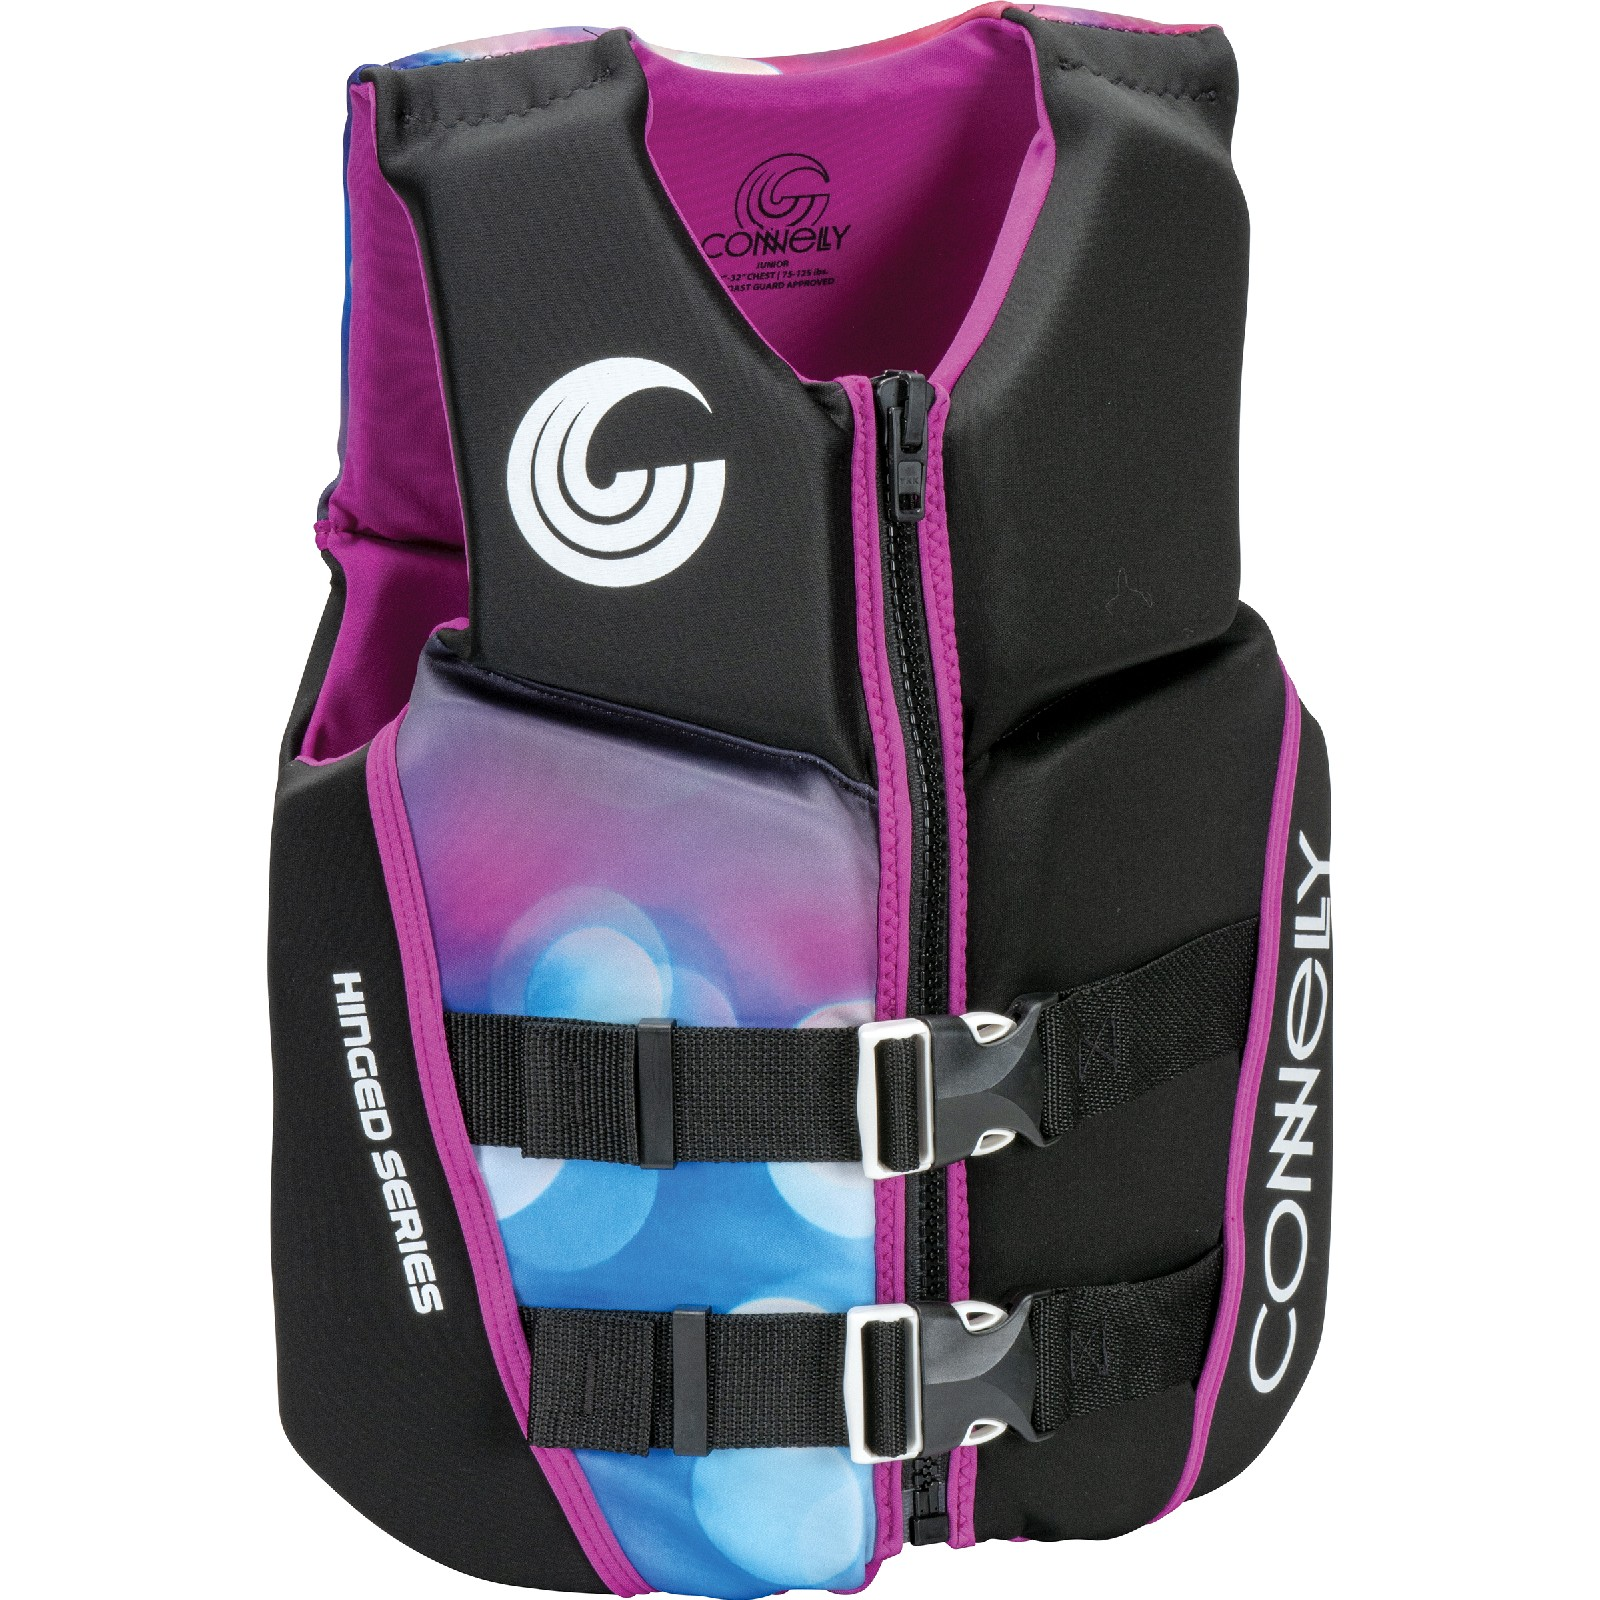 GIRL'S CLASSIC NEO LIFE VEST - JUNIOR 35-55KG CONNELLY 2019